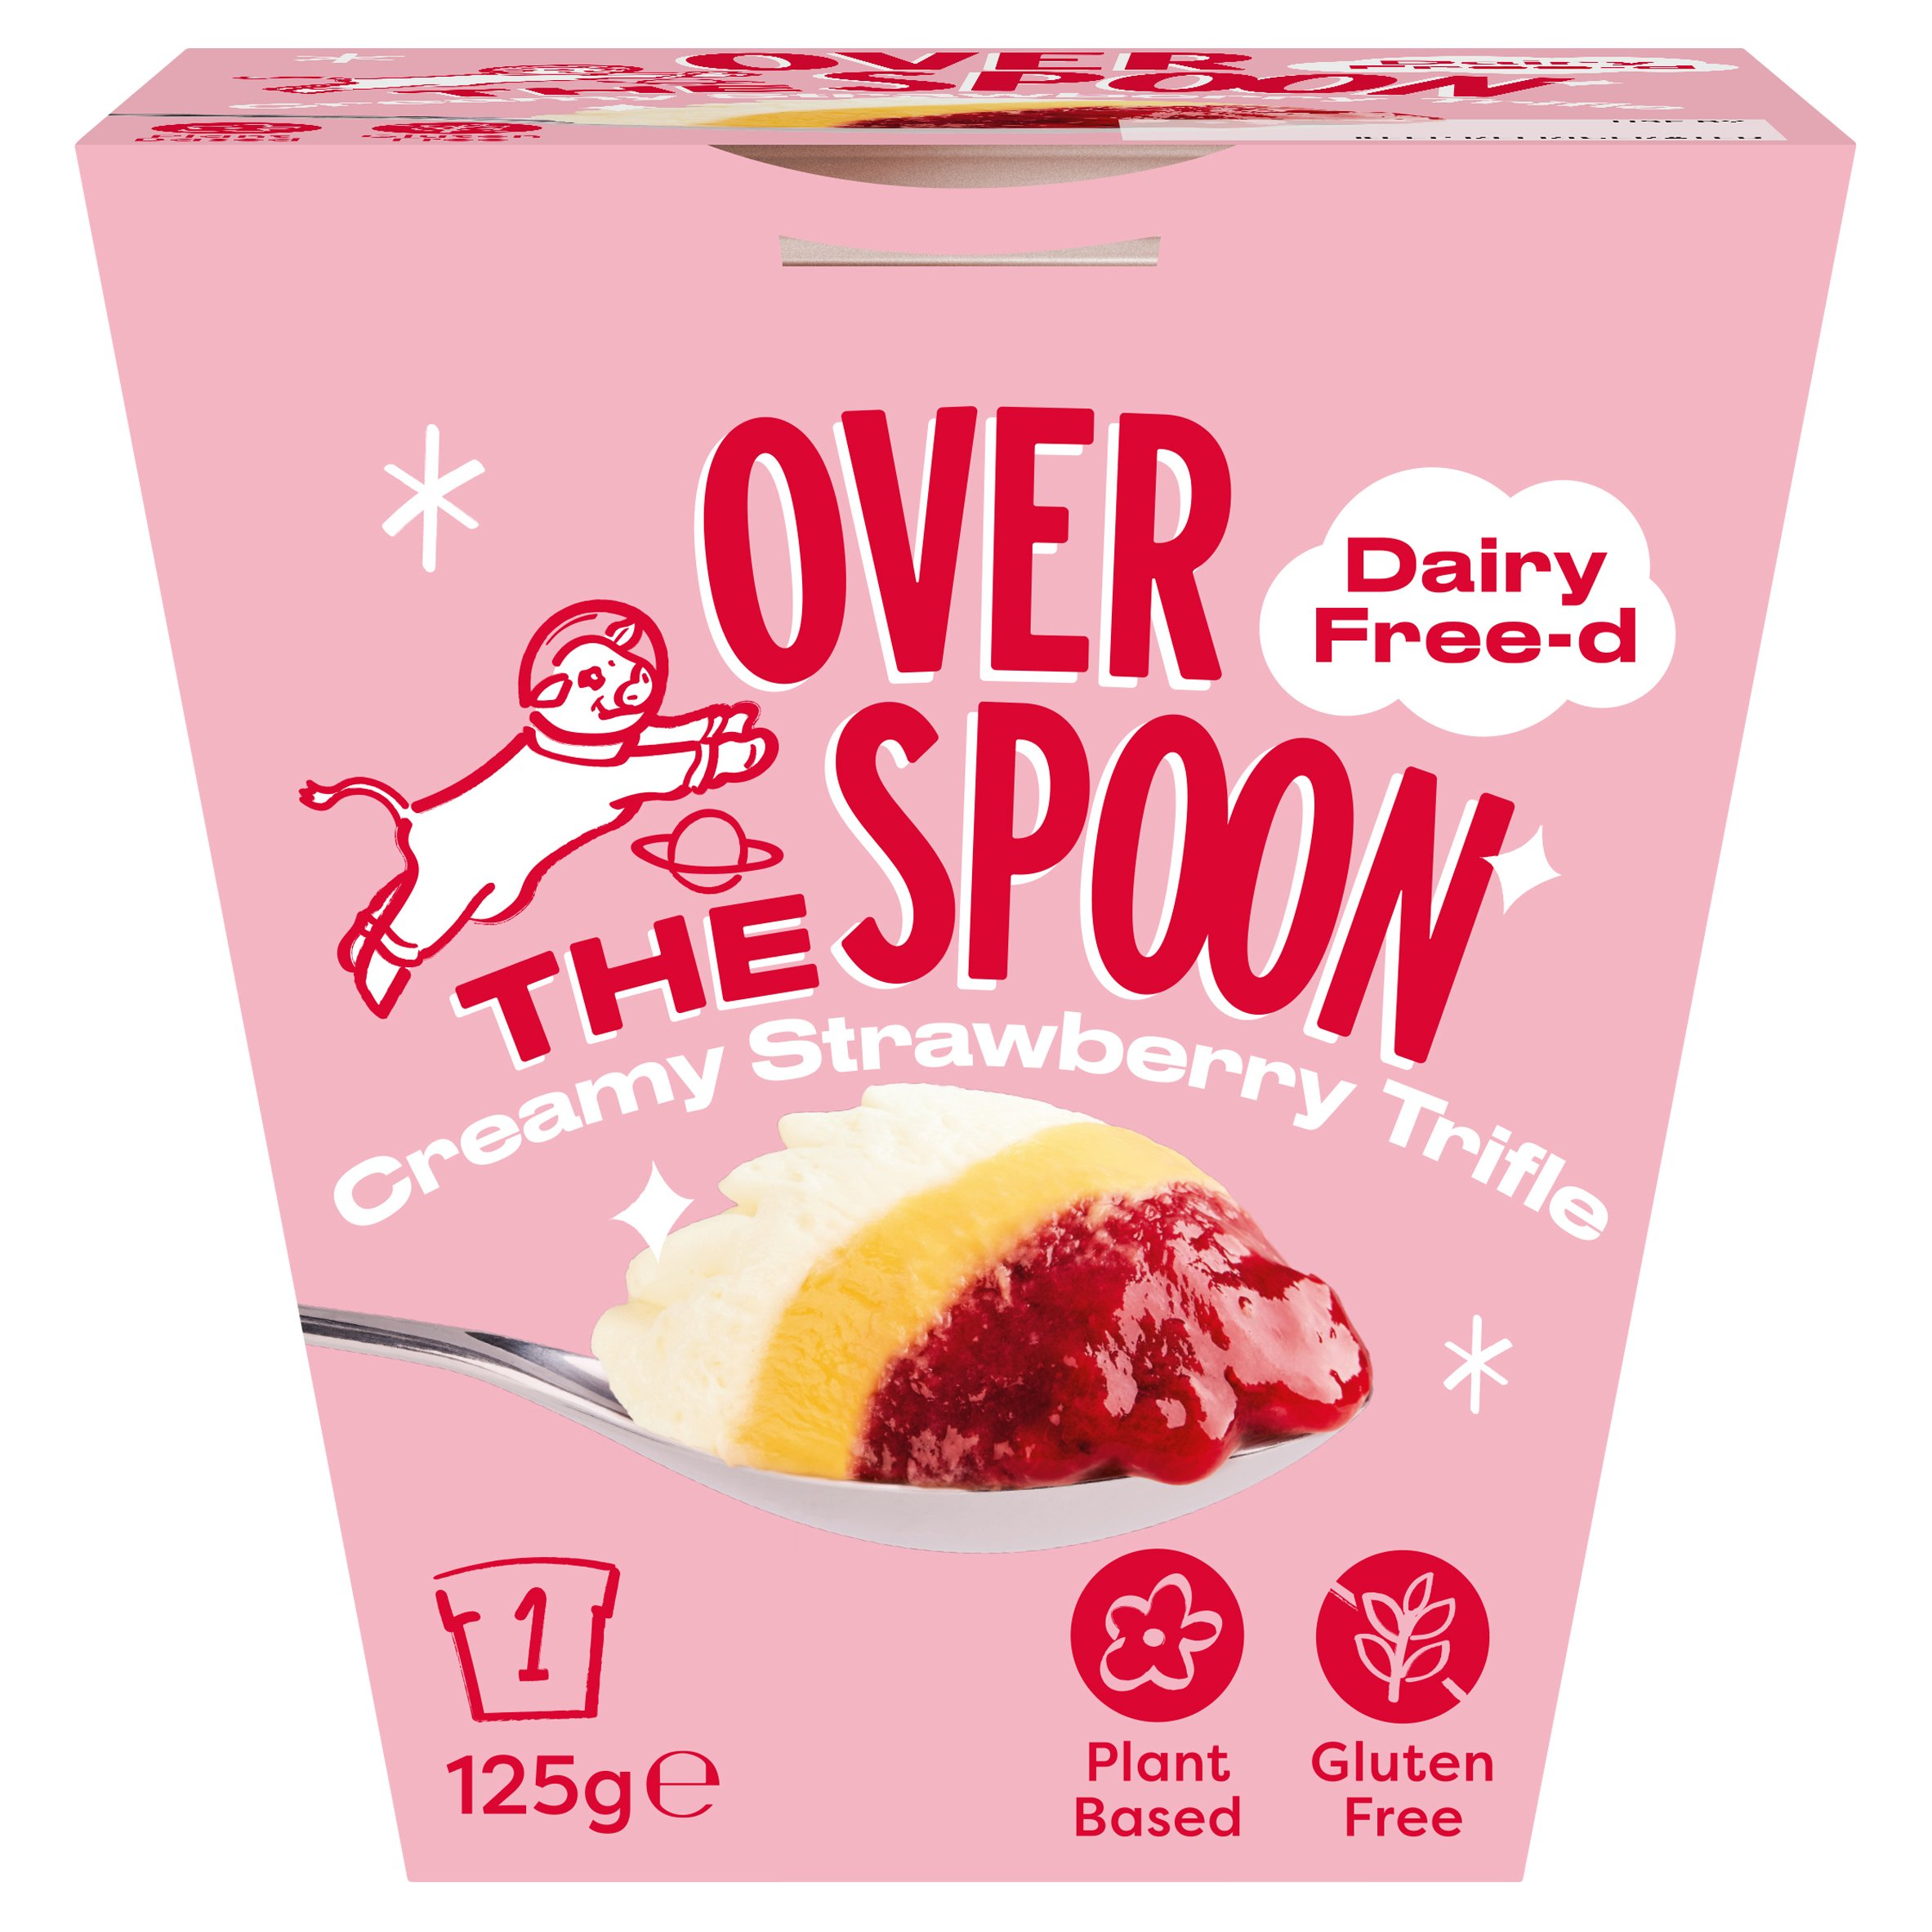 Over The Spoon Strawberry Trifle 125G